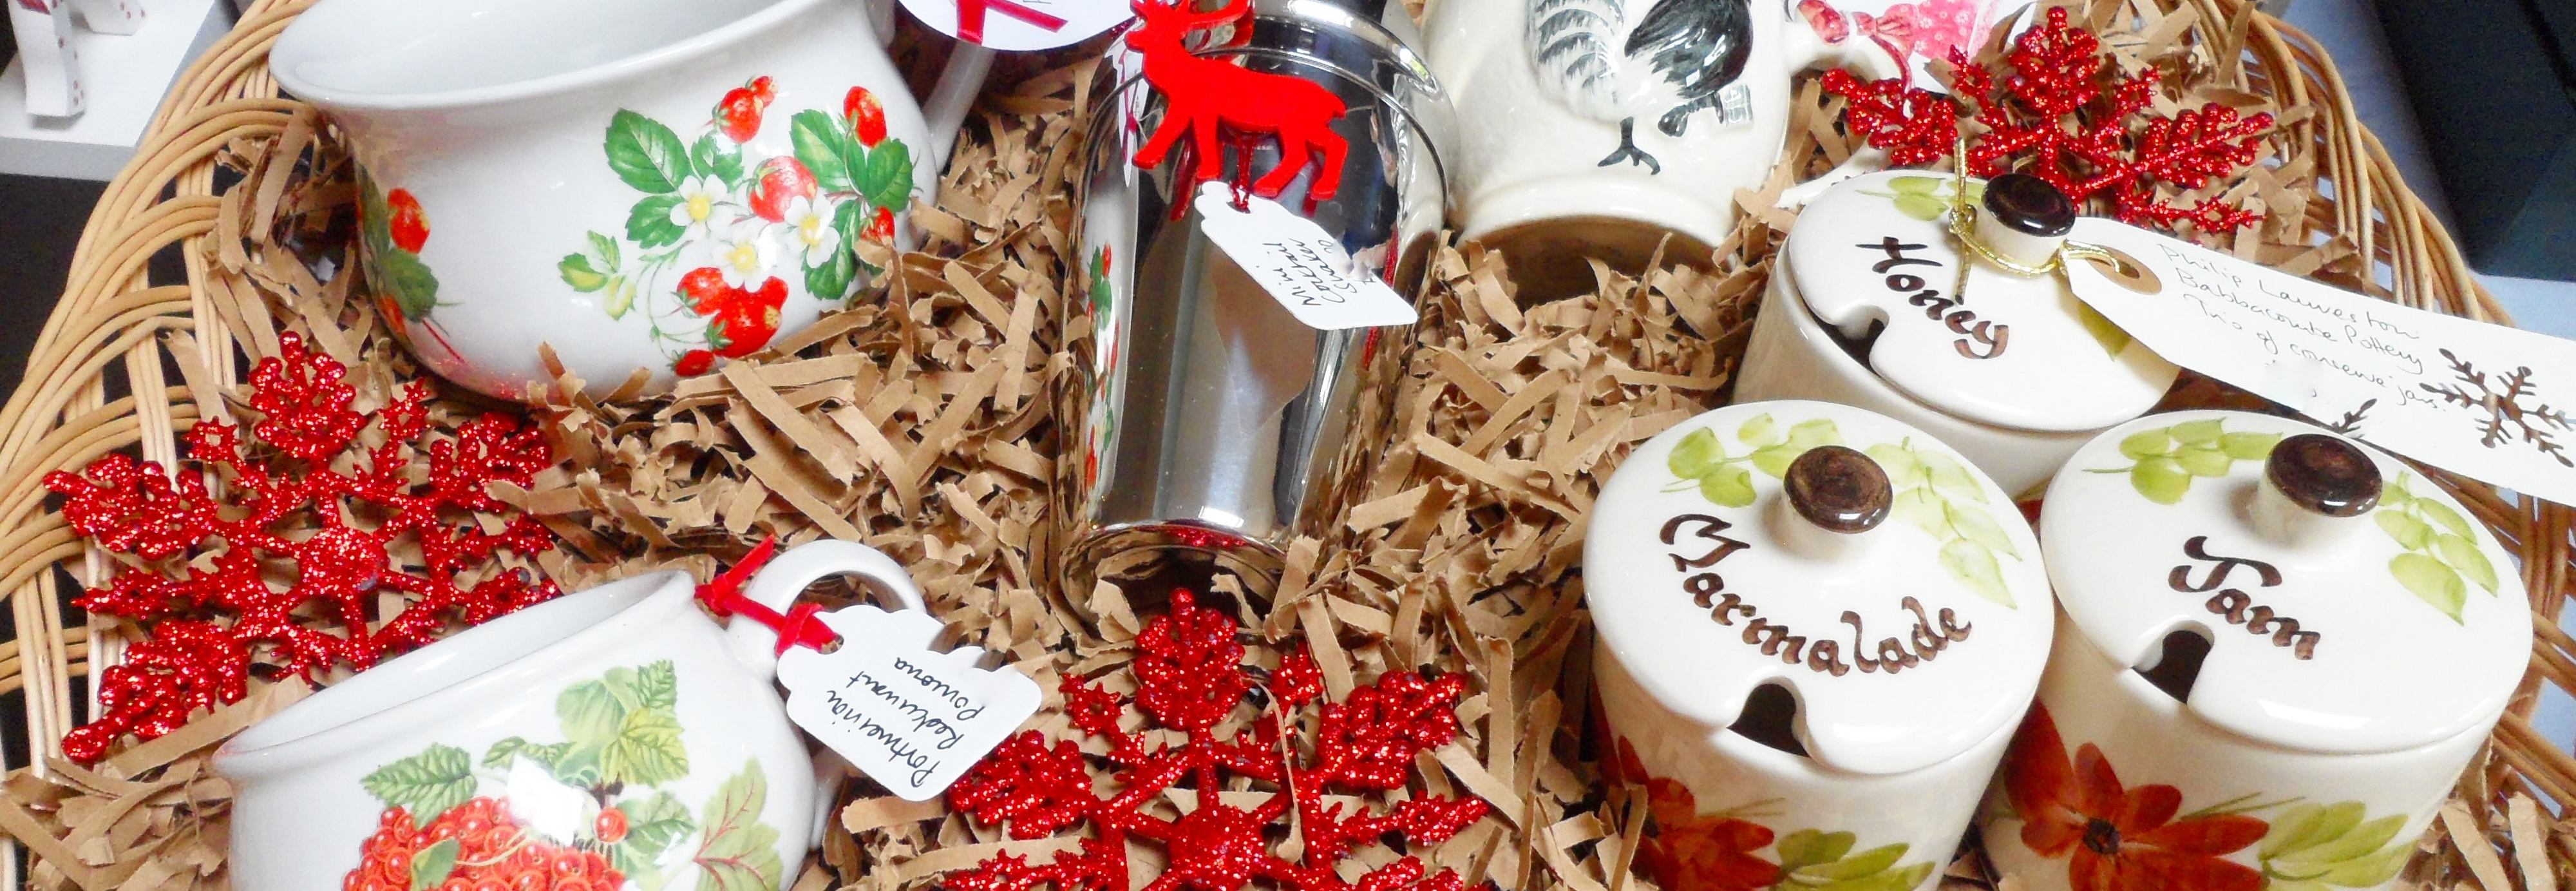 Let's Do Vintage at Christmas Fair Sandwich 7 November 2015